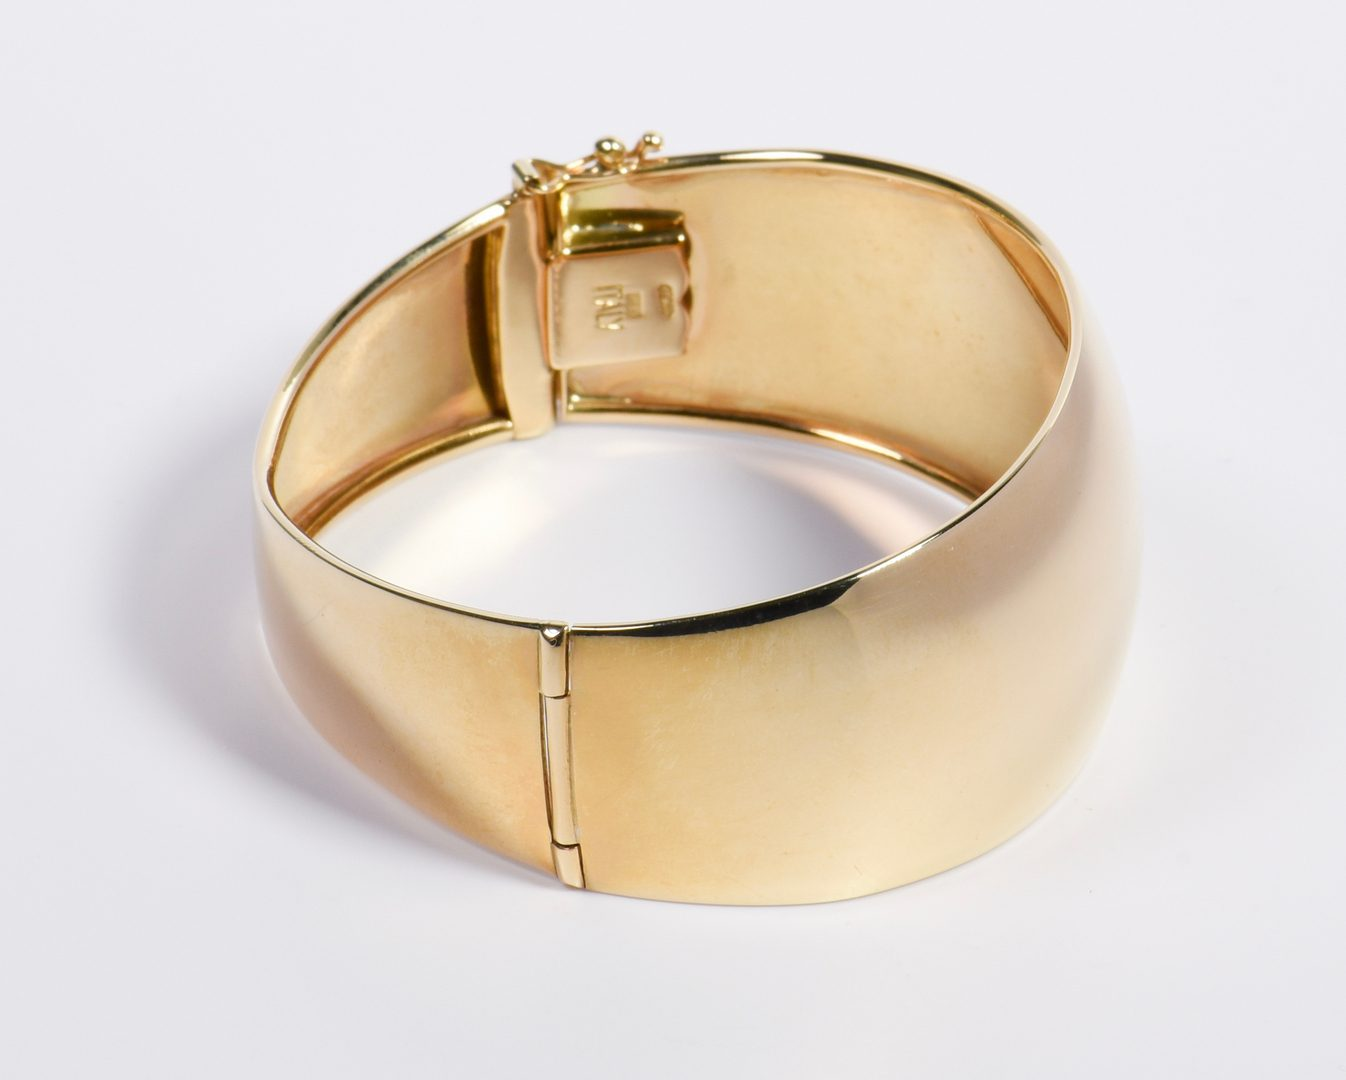 Lot 17: Italian 14K Contemporary Bangle